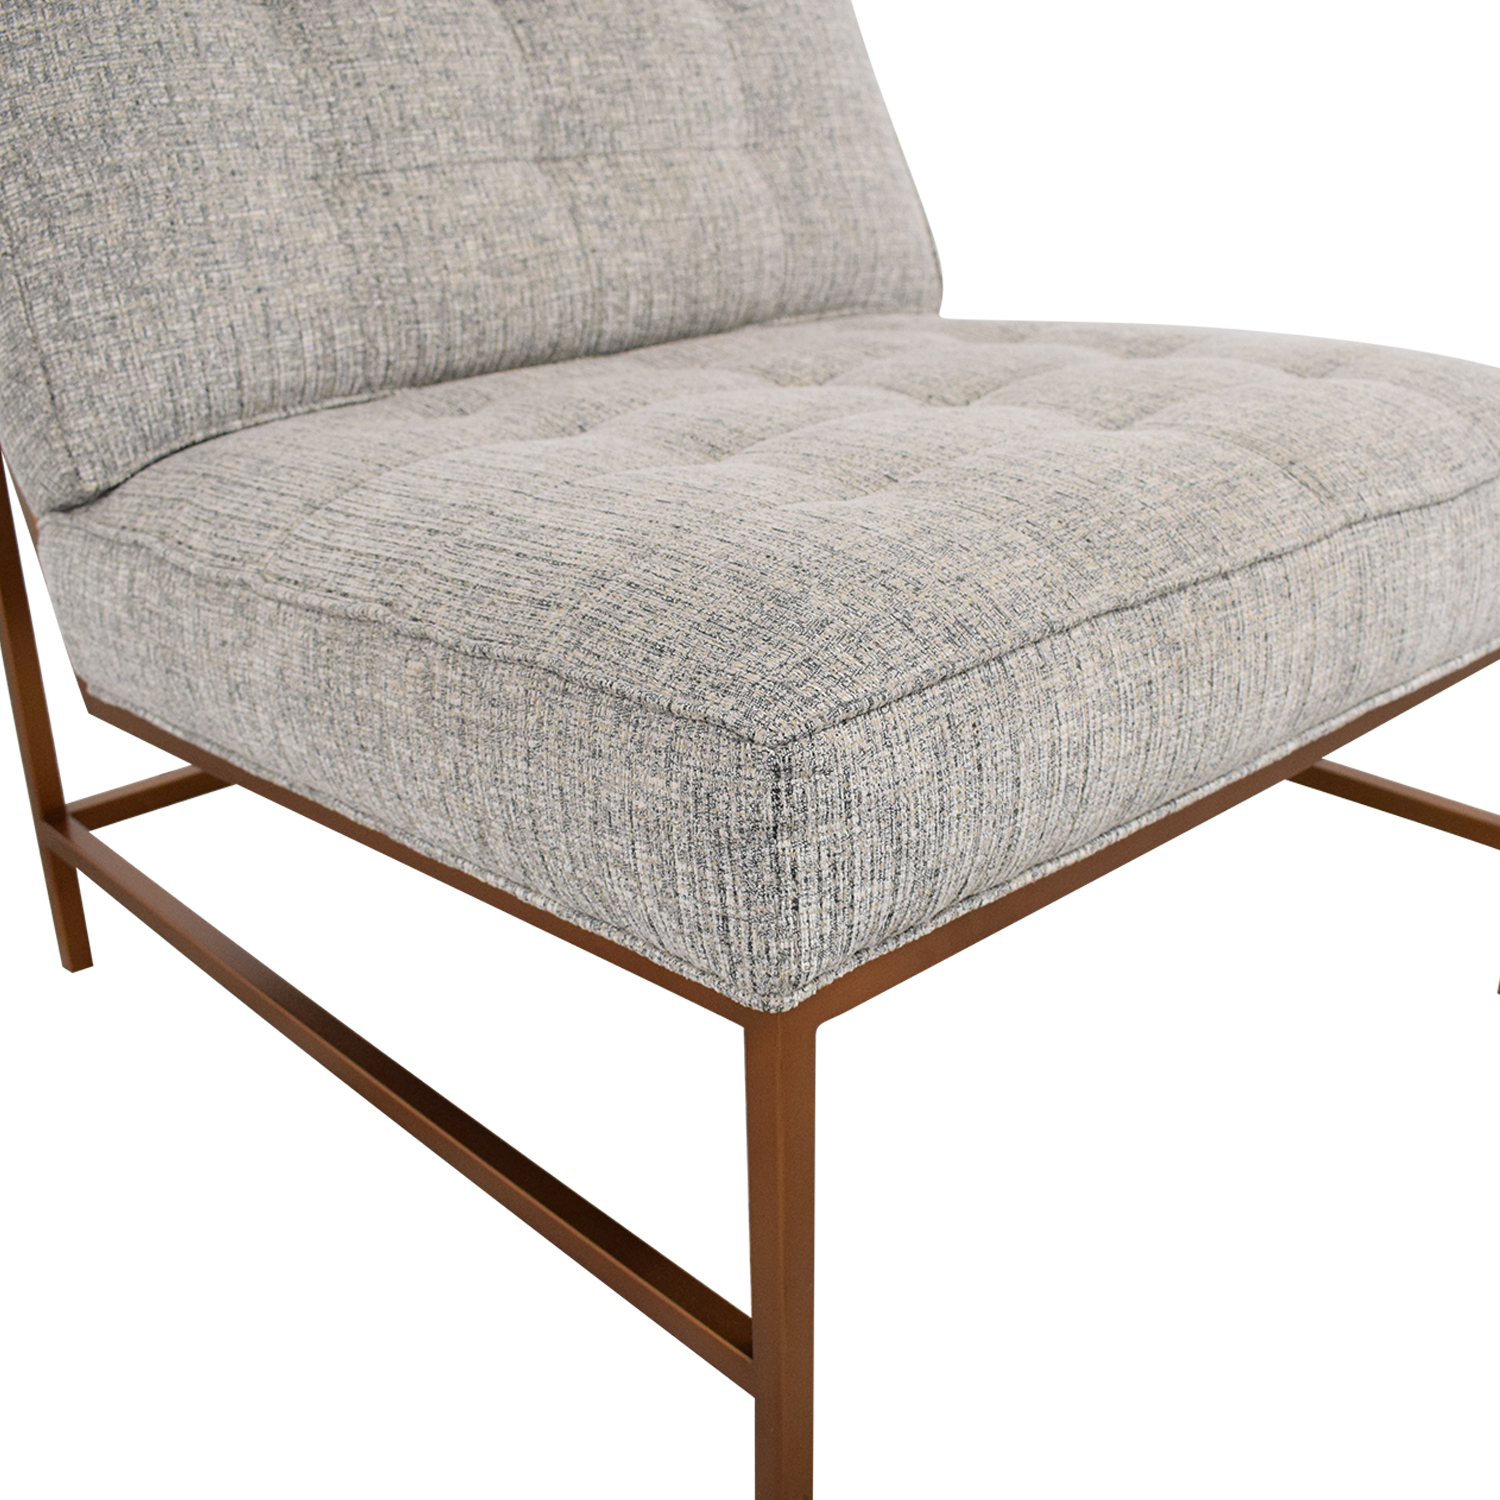 Mitchell Gold + Bob Williams Mitchell Gold + Bob Williams Major Lounge Chair ct